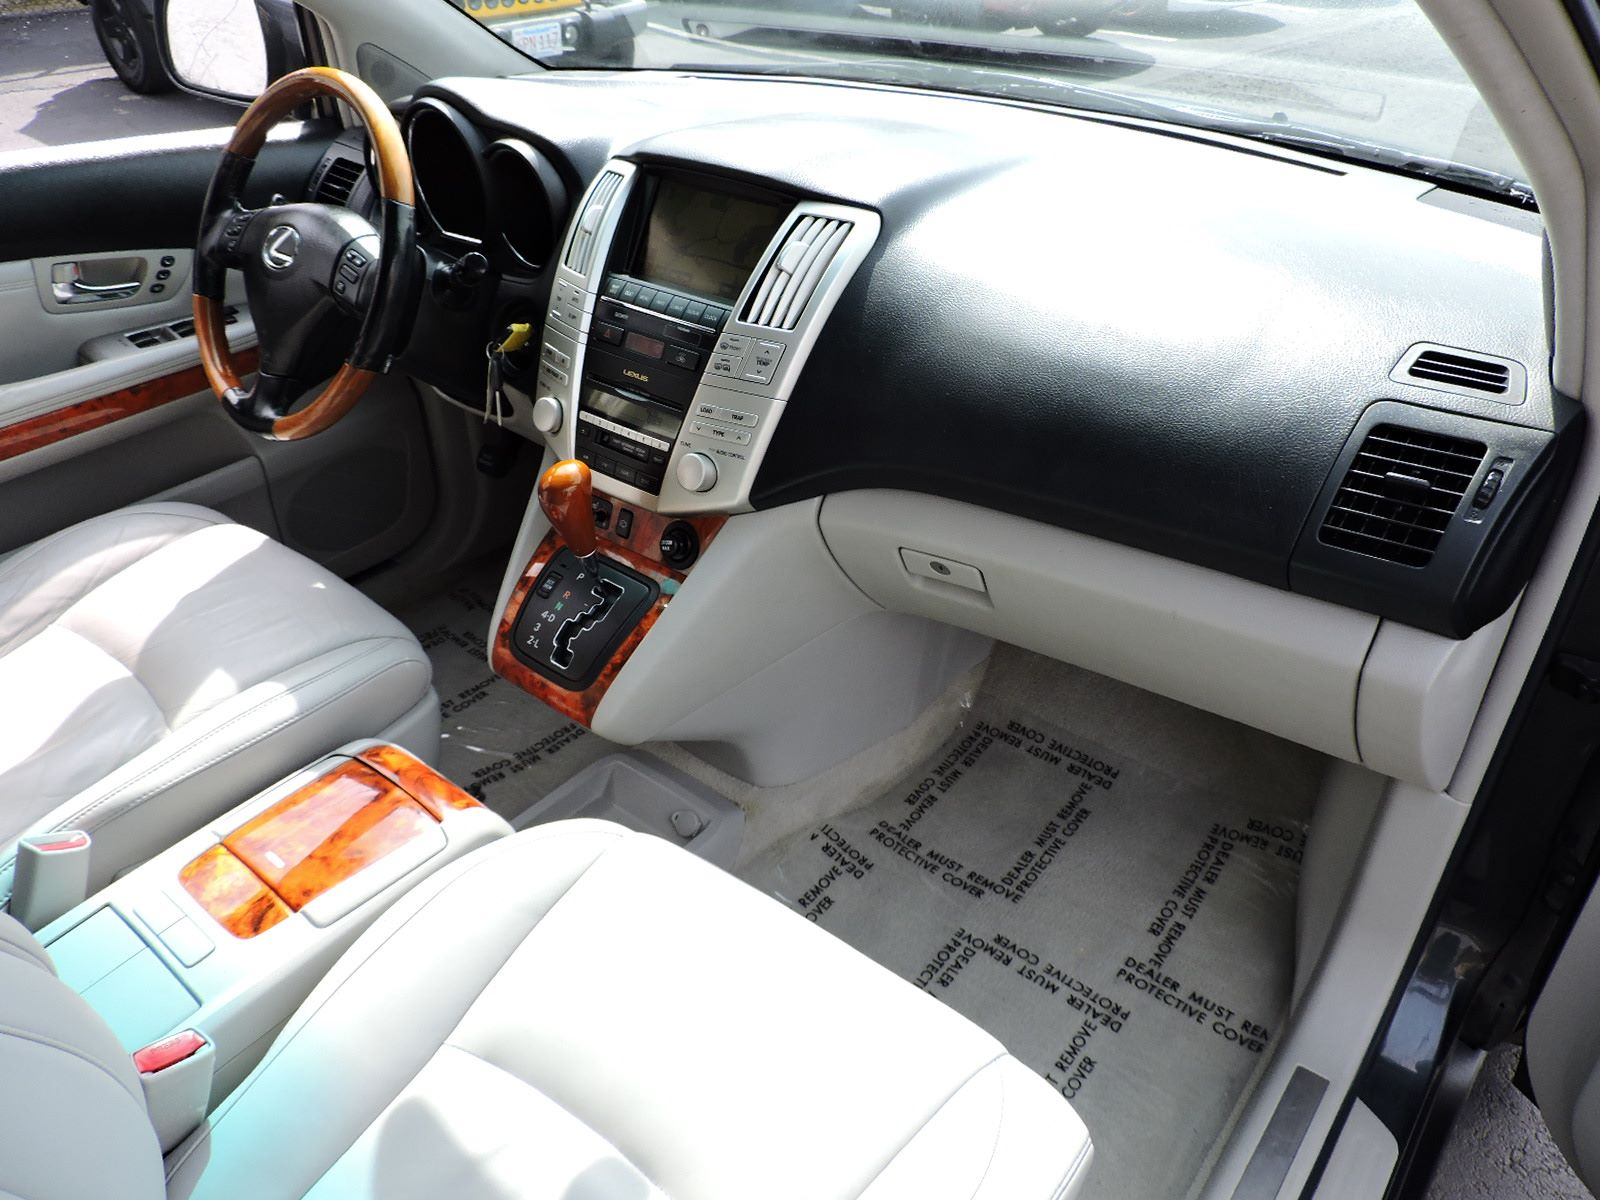 Used 2005 Lexus Rx 330 35i Sport Activity At Auto House Usa Saugus Rx330 Floor Mats All Wheel Drive